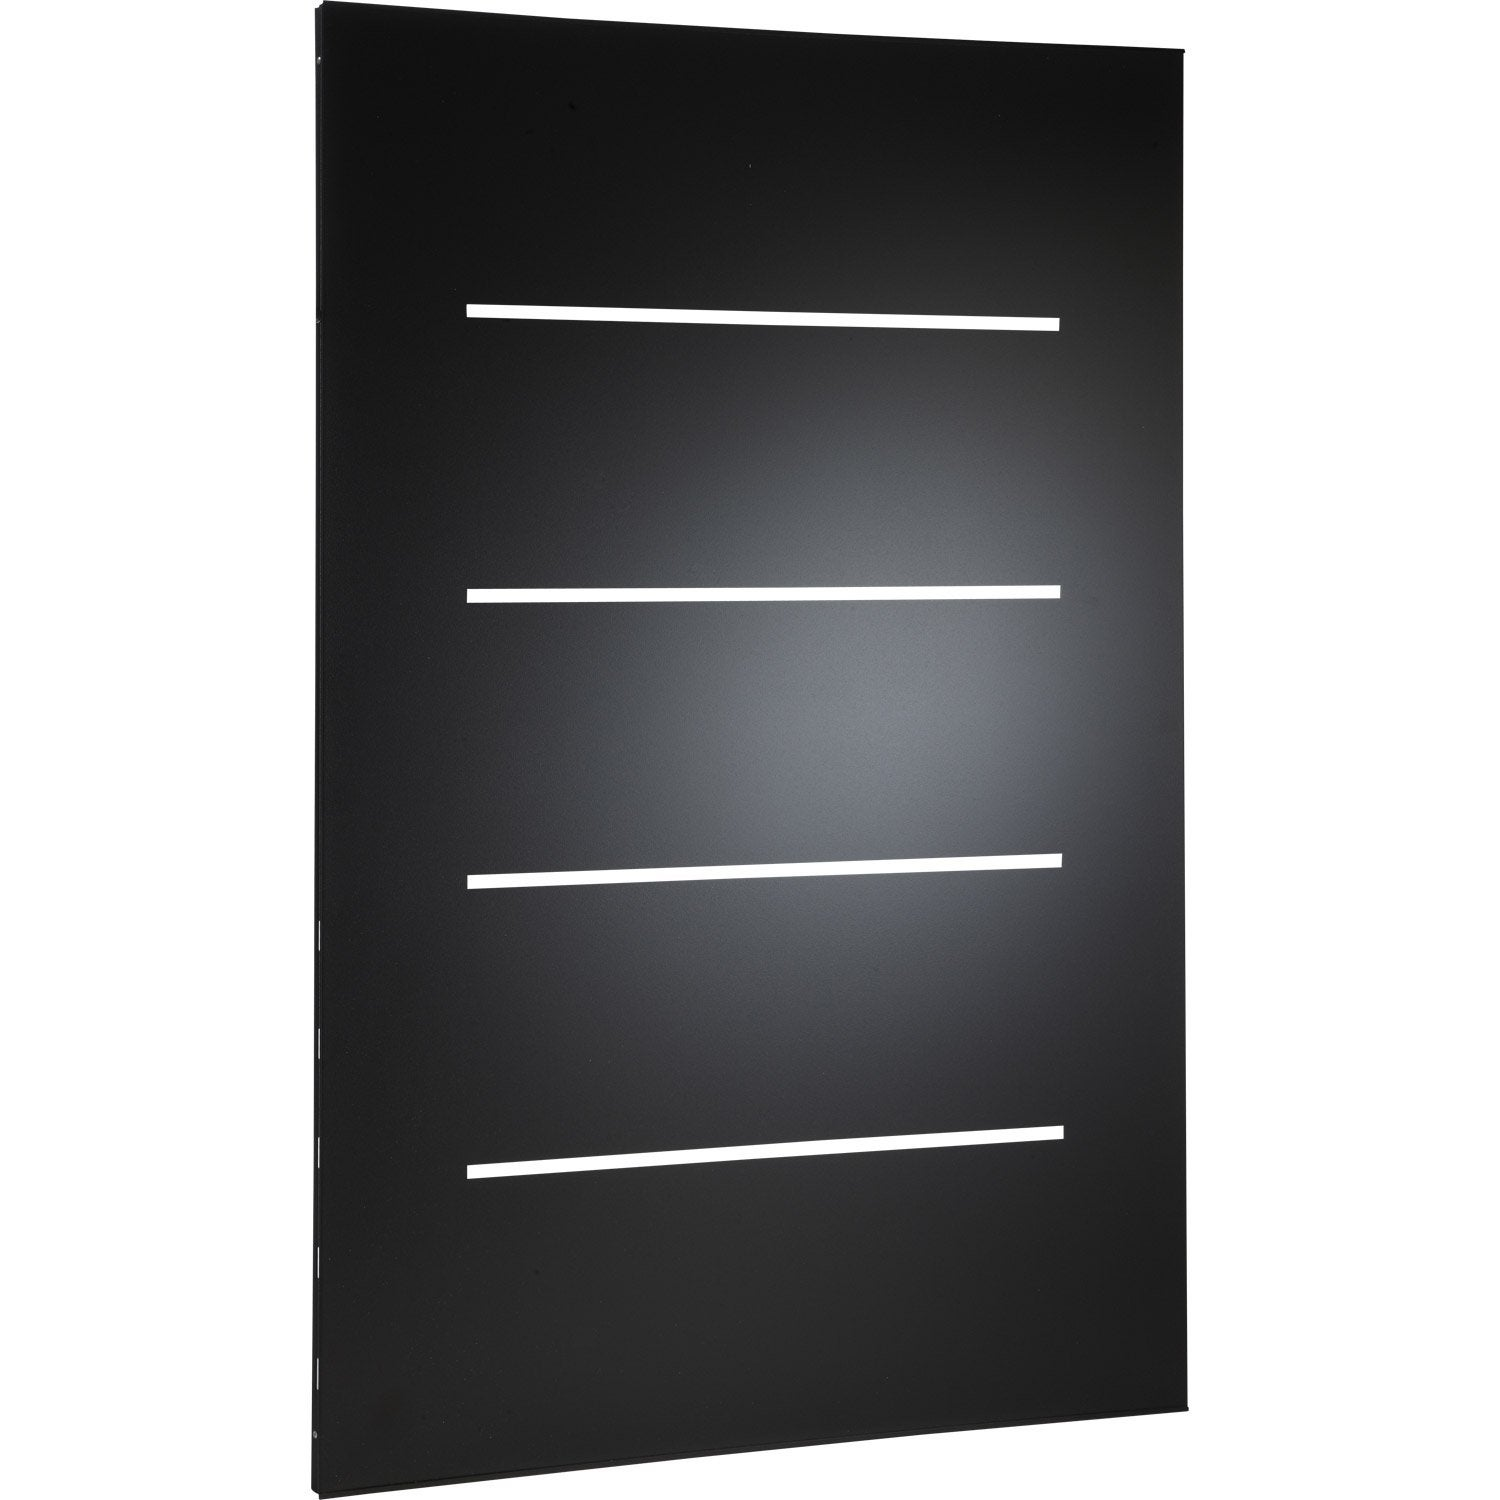 plaque de protection murale noir atelier dixneuf horizon. Black Bedroom Furniture Sets. Home Design Ideas